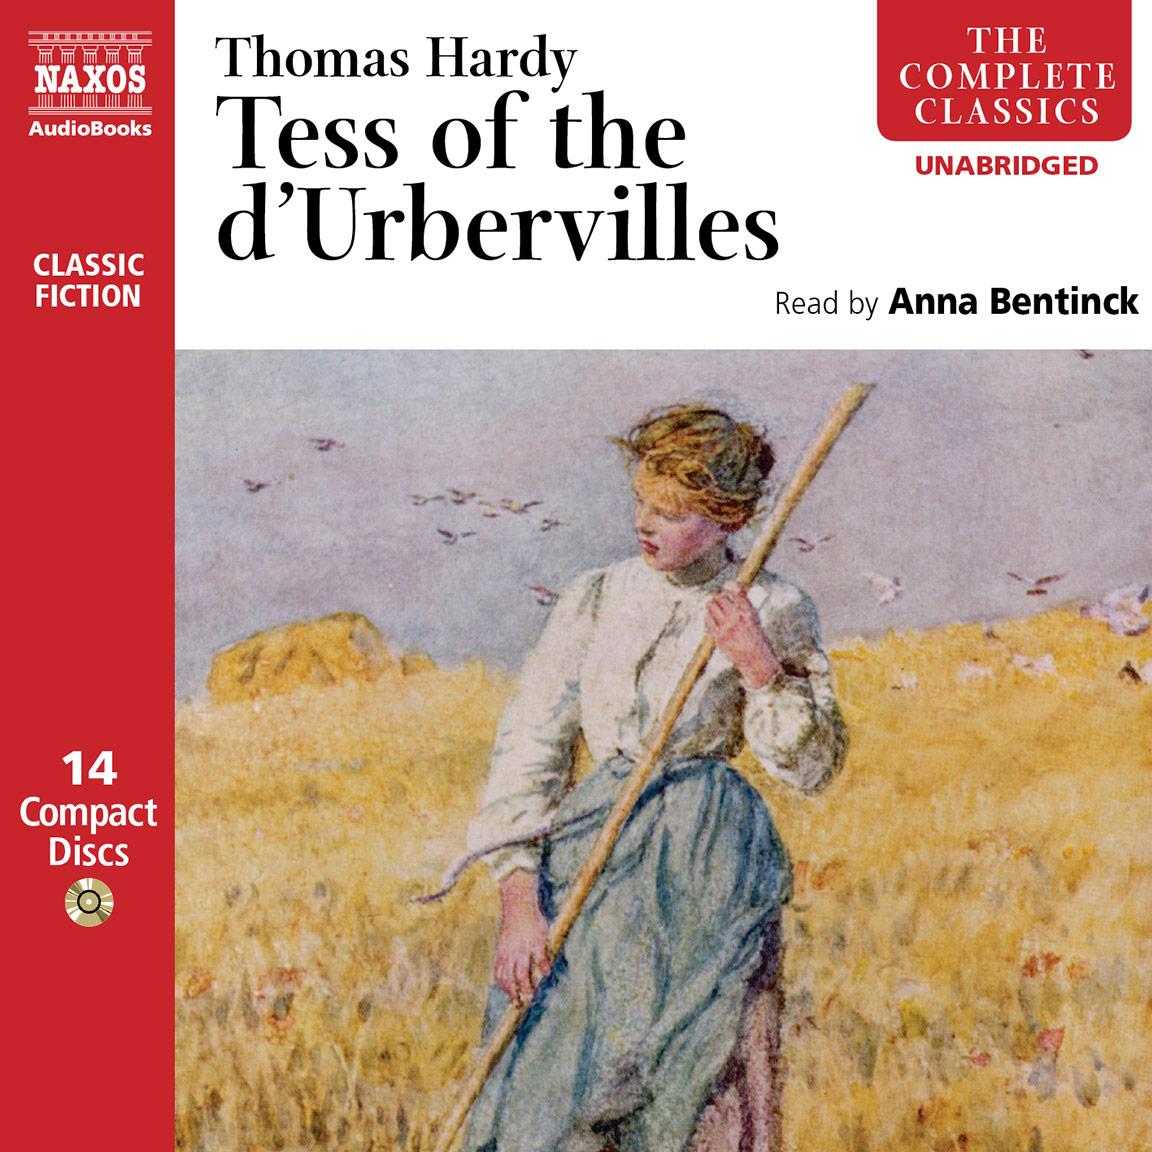 the role of characterization in thomas hardys tess of the durbervilles Cheap interview analysis sample.